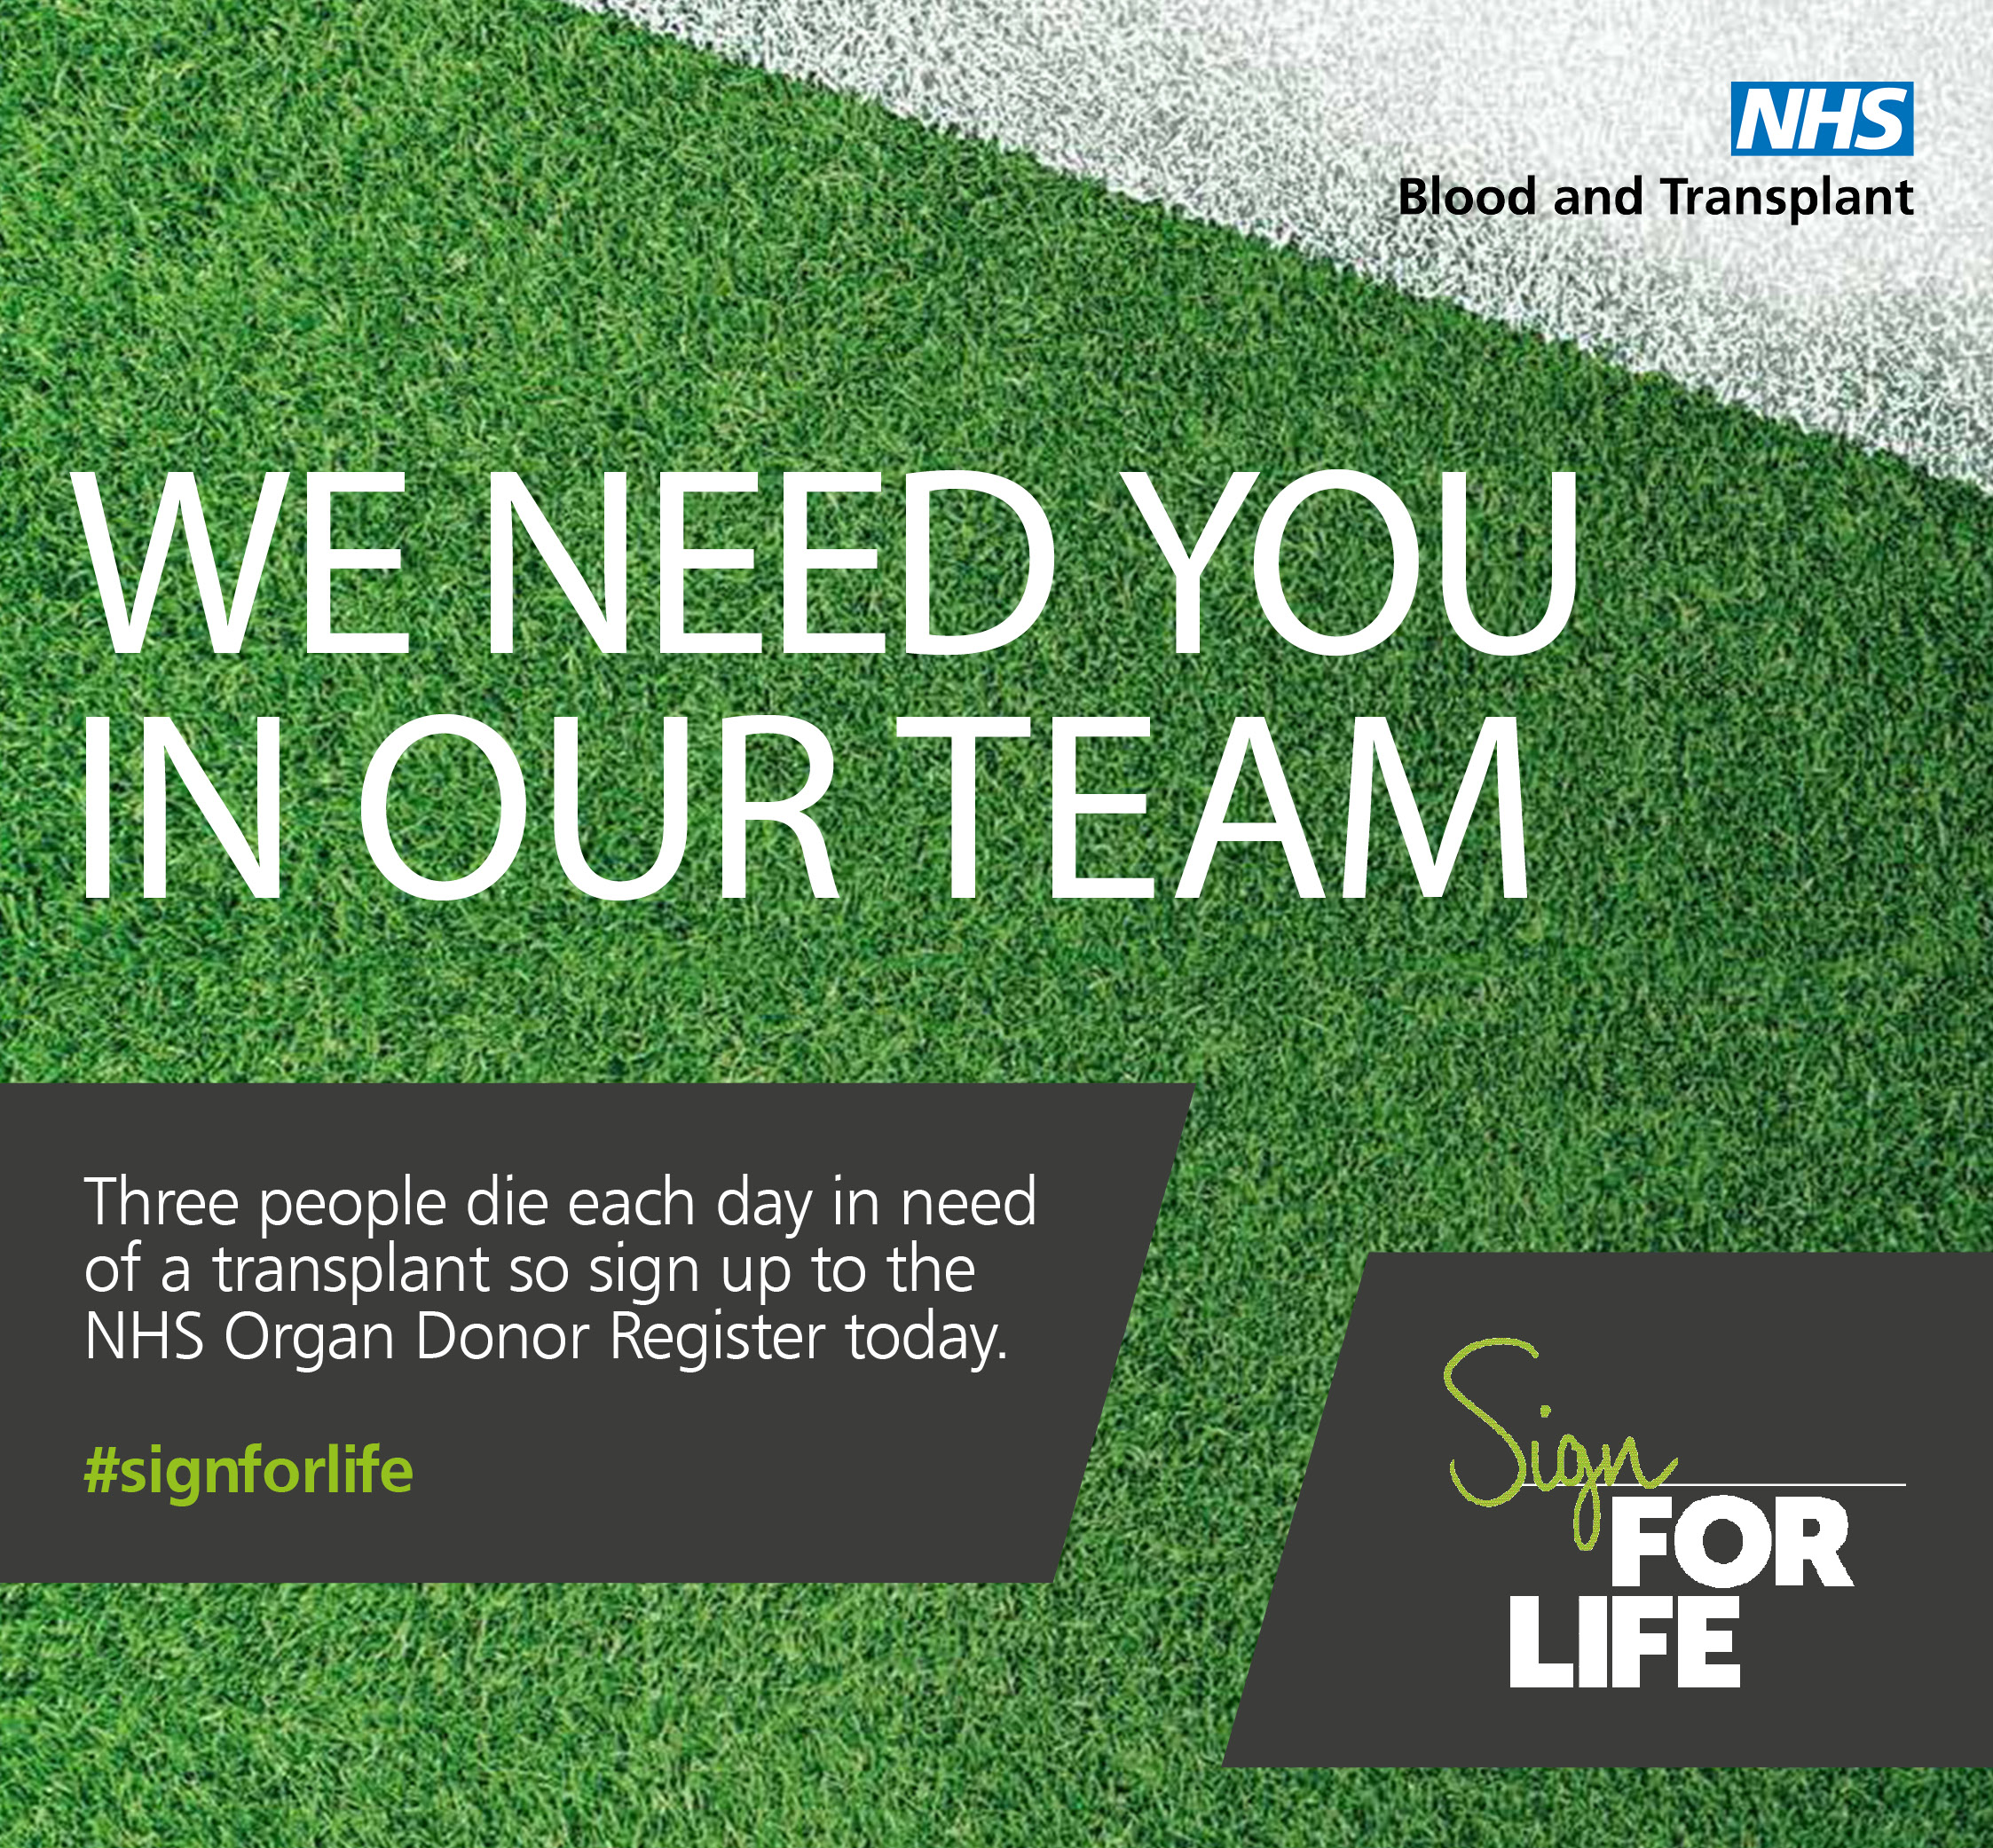 Sign For Life mid-page banner